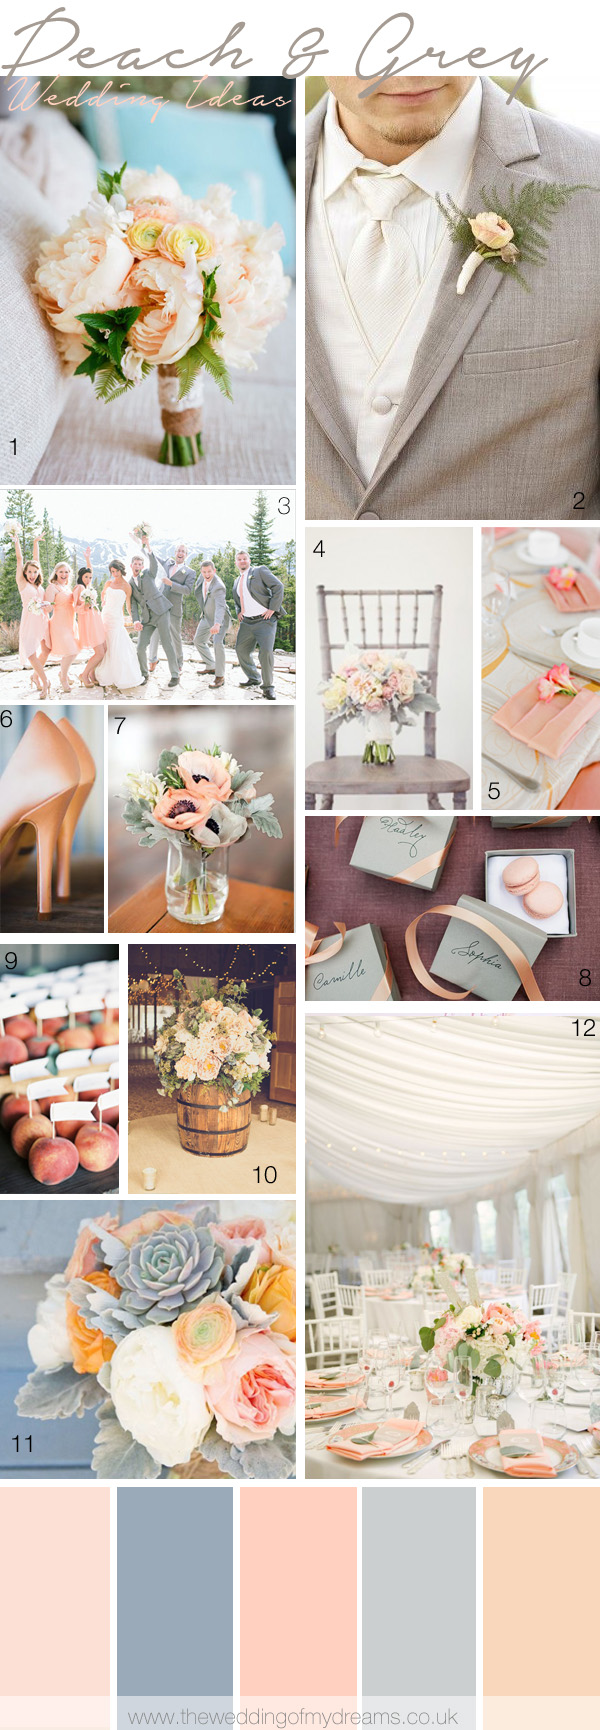 peach grey wedding inspiration decorations